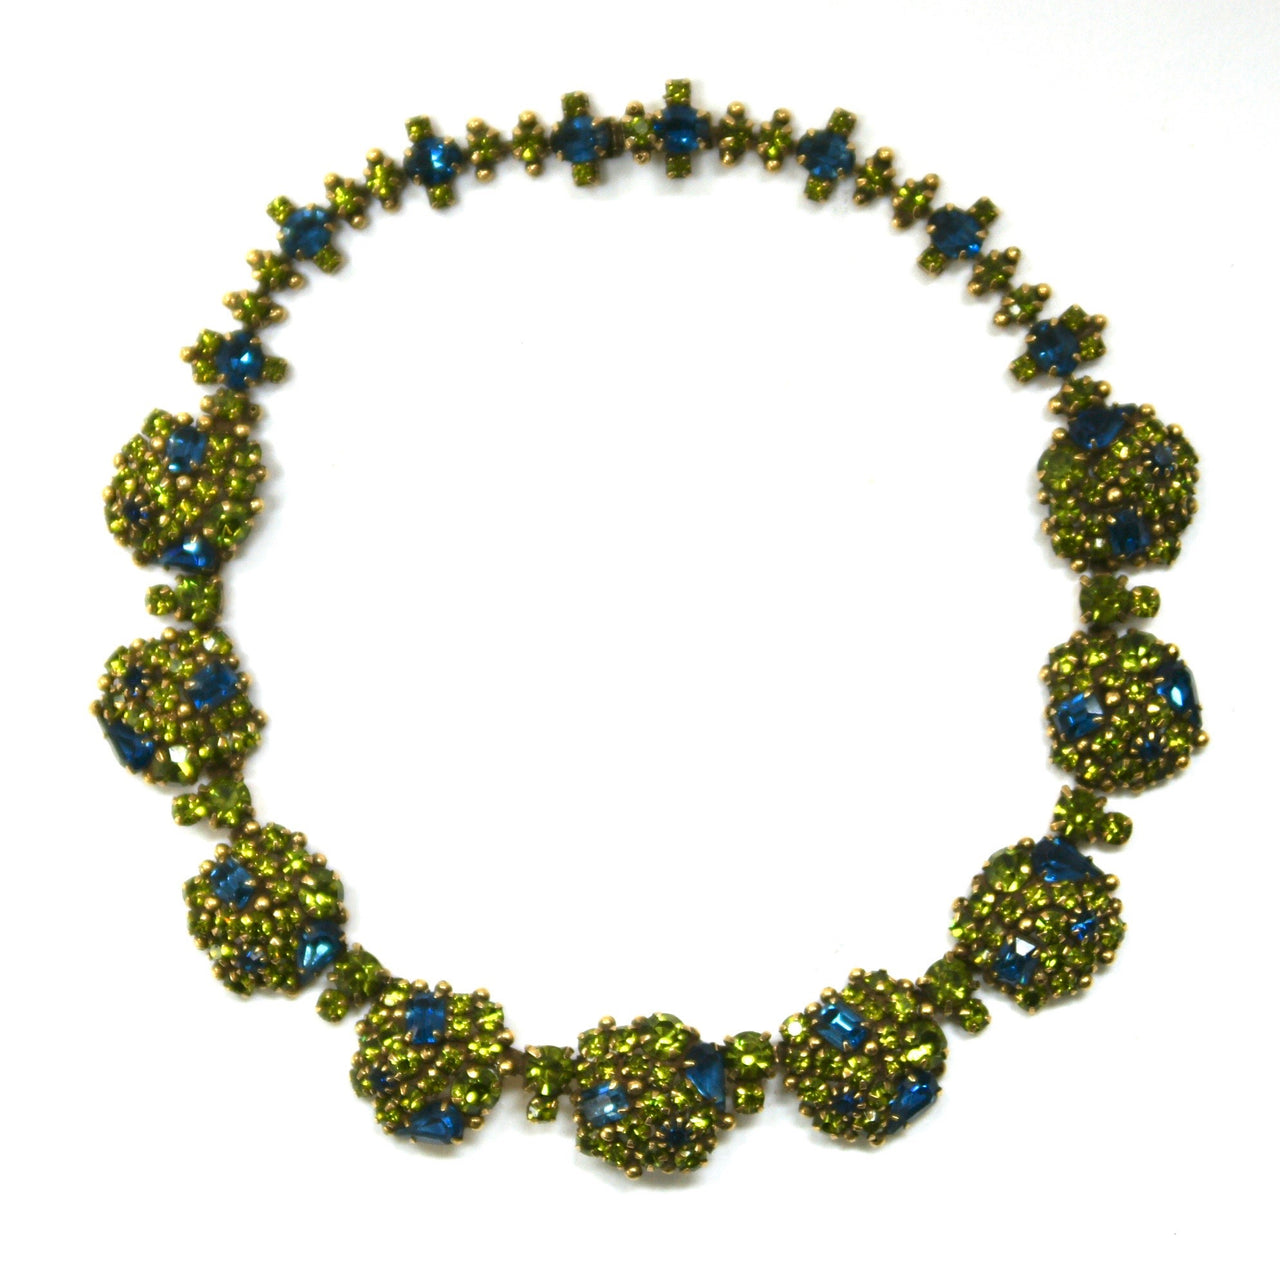 Eclecica Vintage 1950s Kramer Rhinestone Necklace, Olive green and Navy